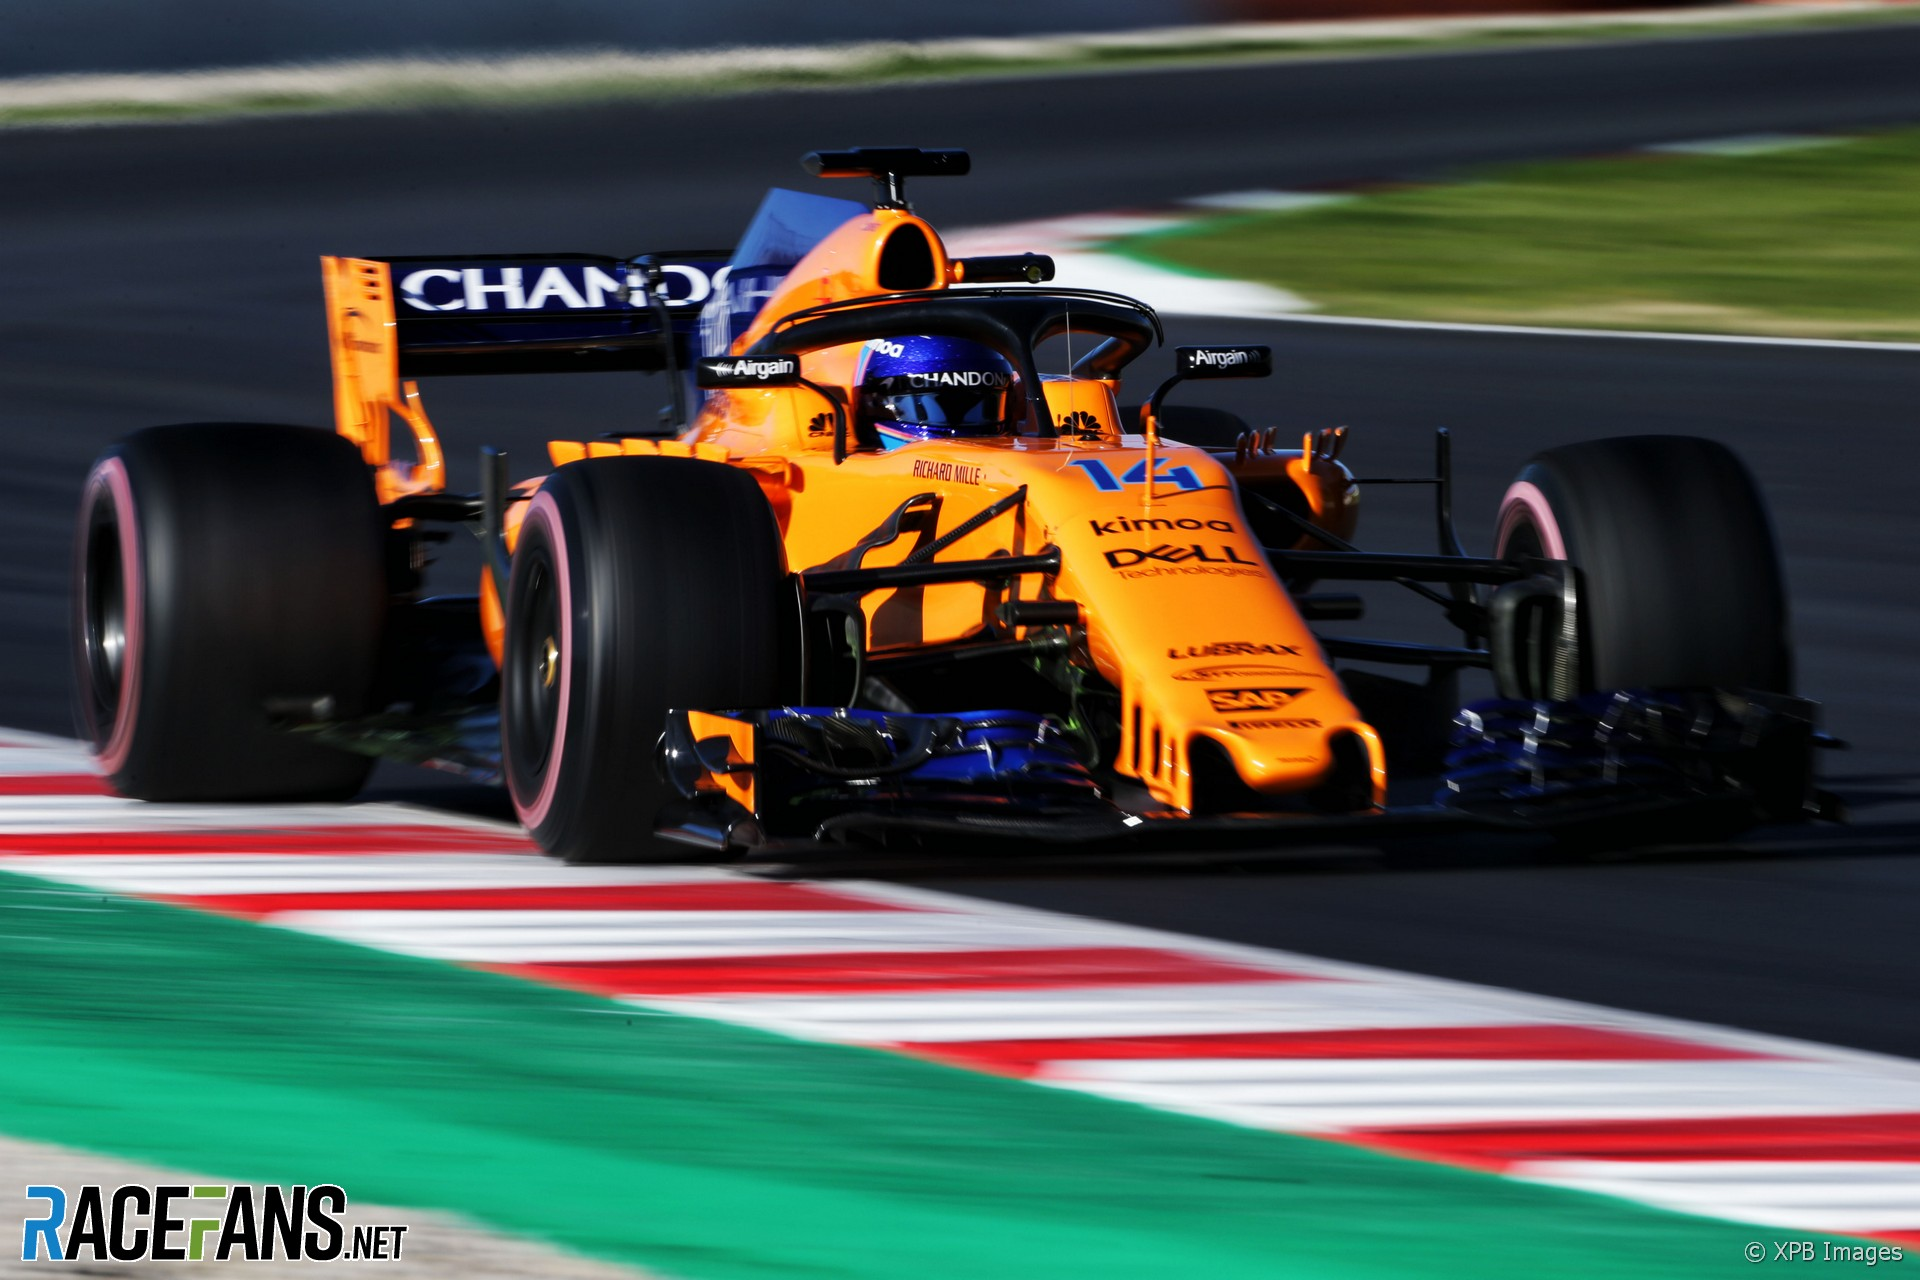 Judge McLaren on first races, not tests - Boullier · RaceFans